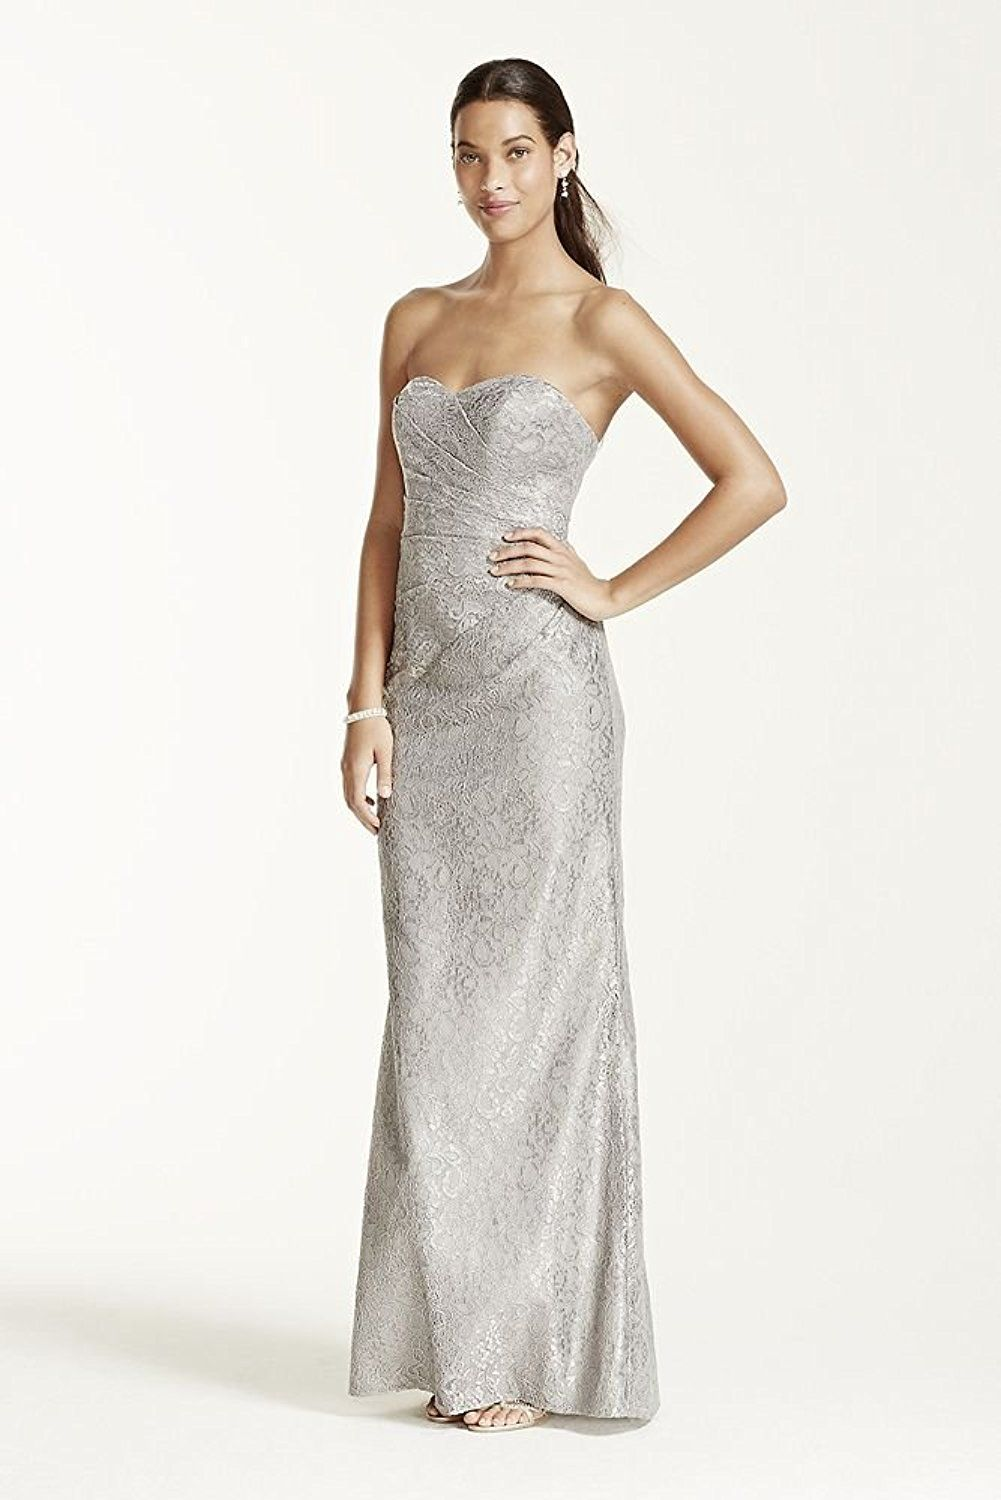 Long strapless metallic lace bridesmaid dress style wm at